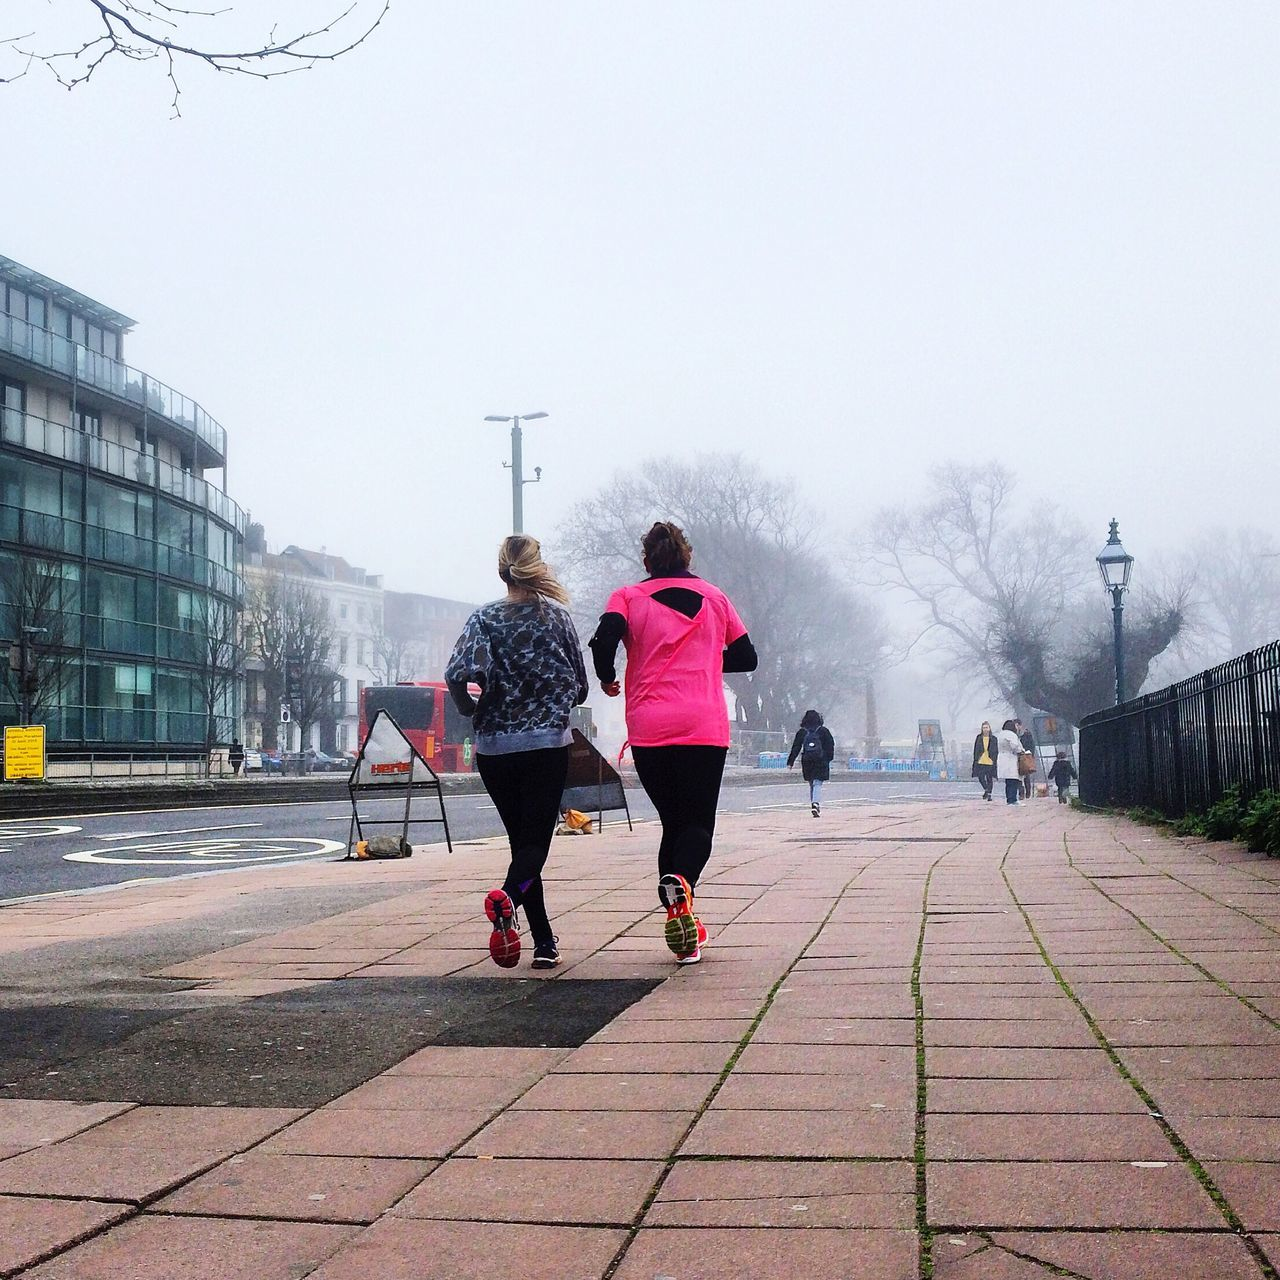 Two women jogging on sidewalk